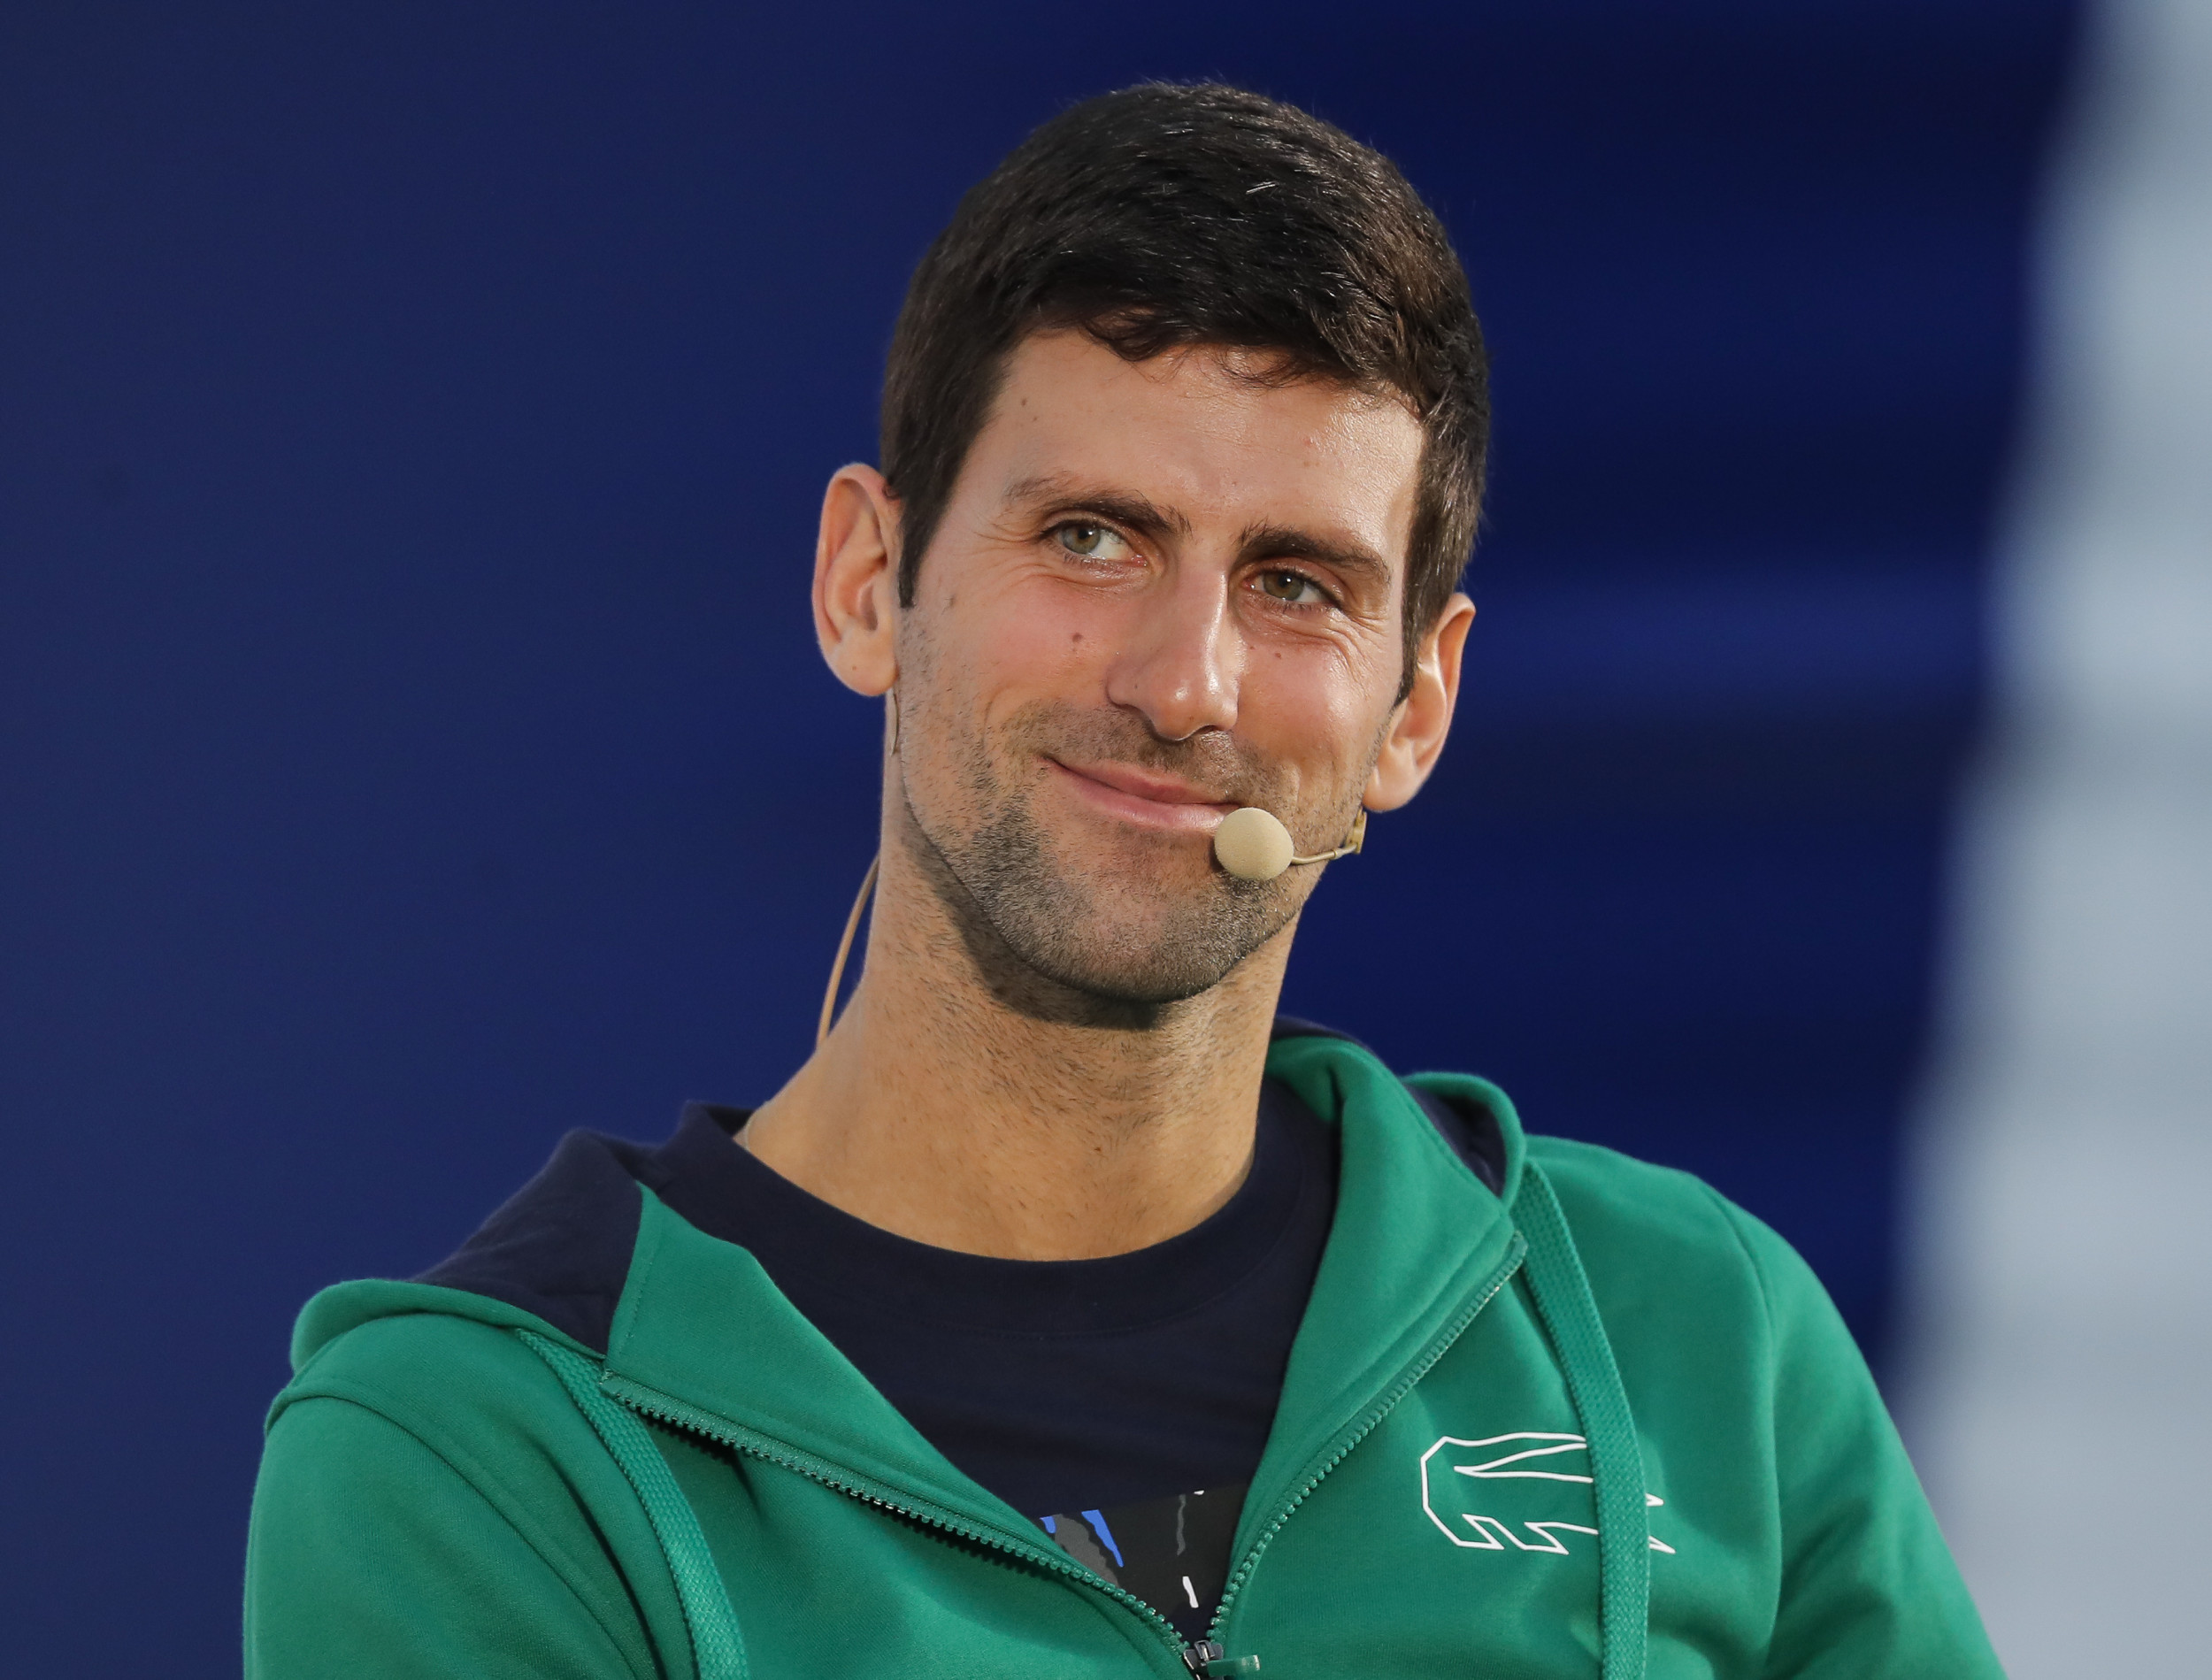 Novak Djokovic Made Some Kids Day With A Game Of Street Tennis And The Internet Loved It